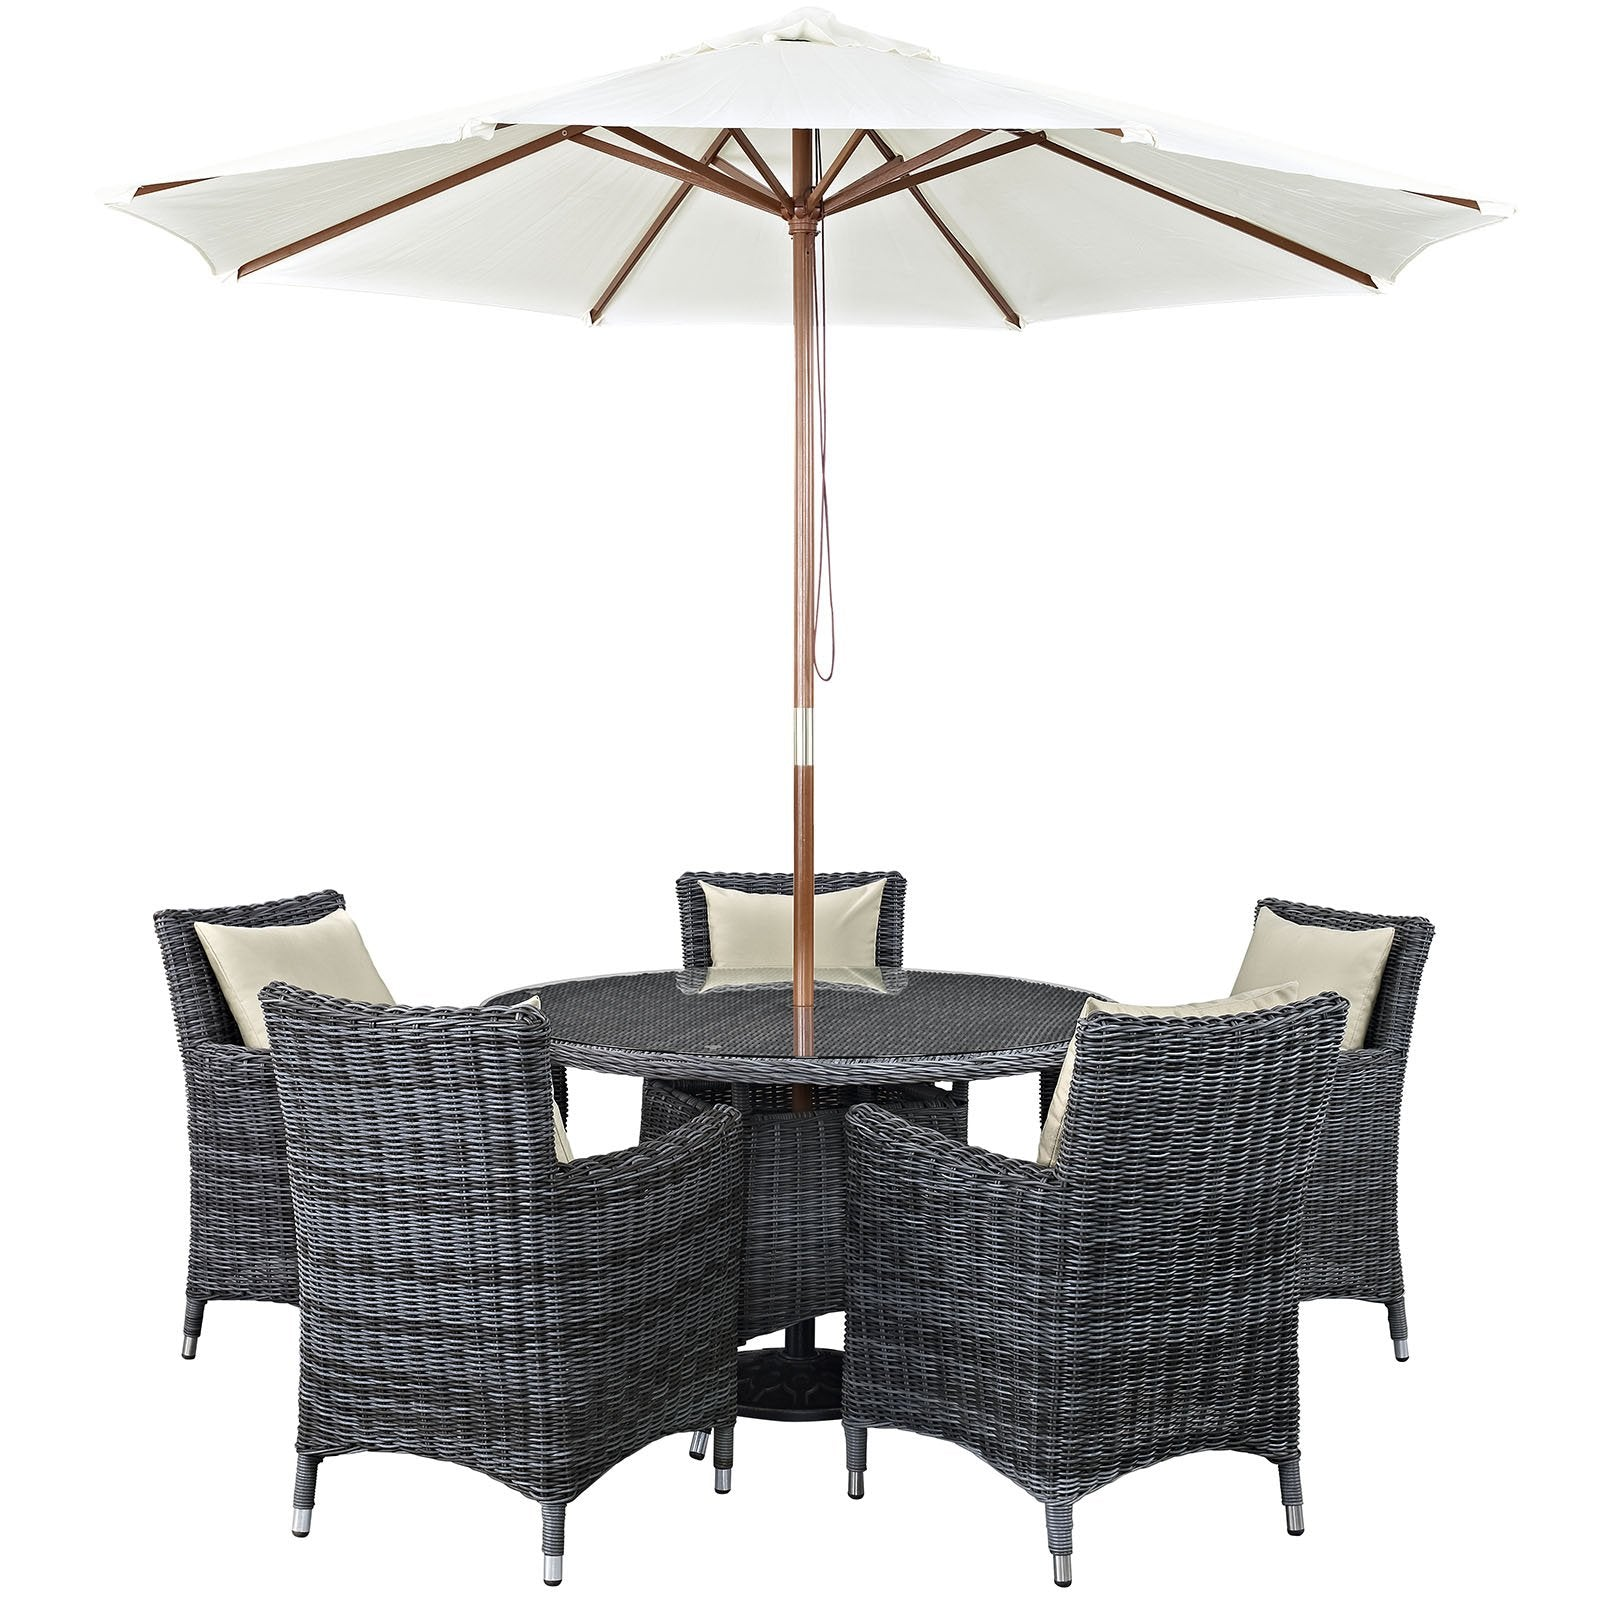 East End Imports Summon 7 Piece Outdoor Patio Sunbrella® Dining Set in Antique Canvas Beige